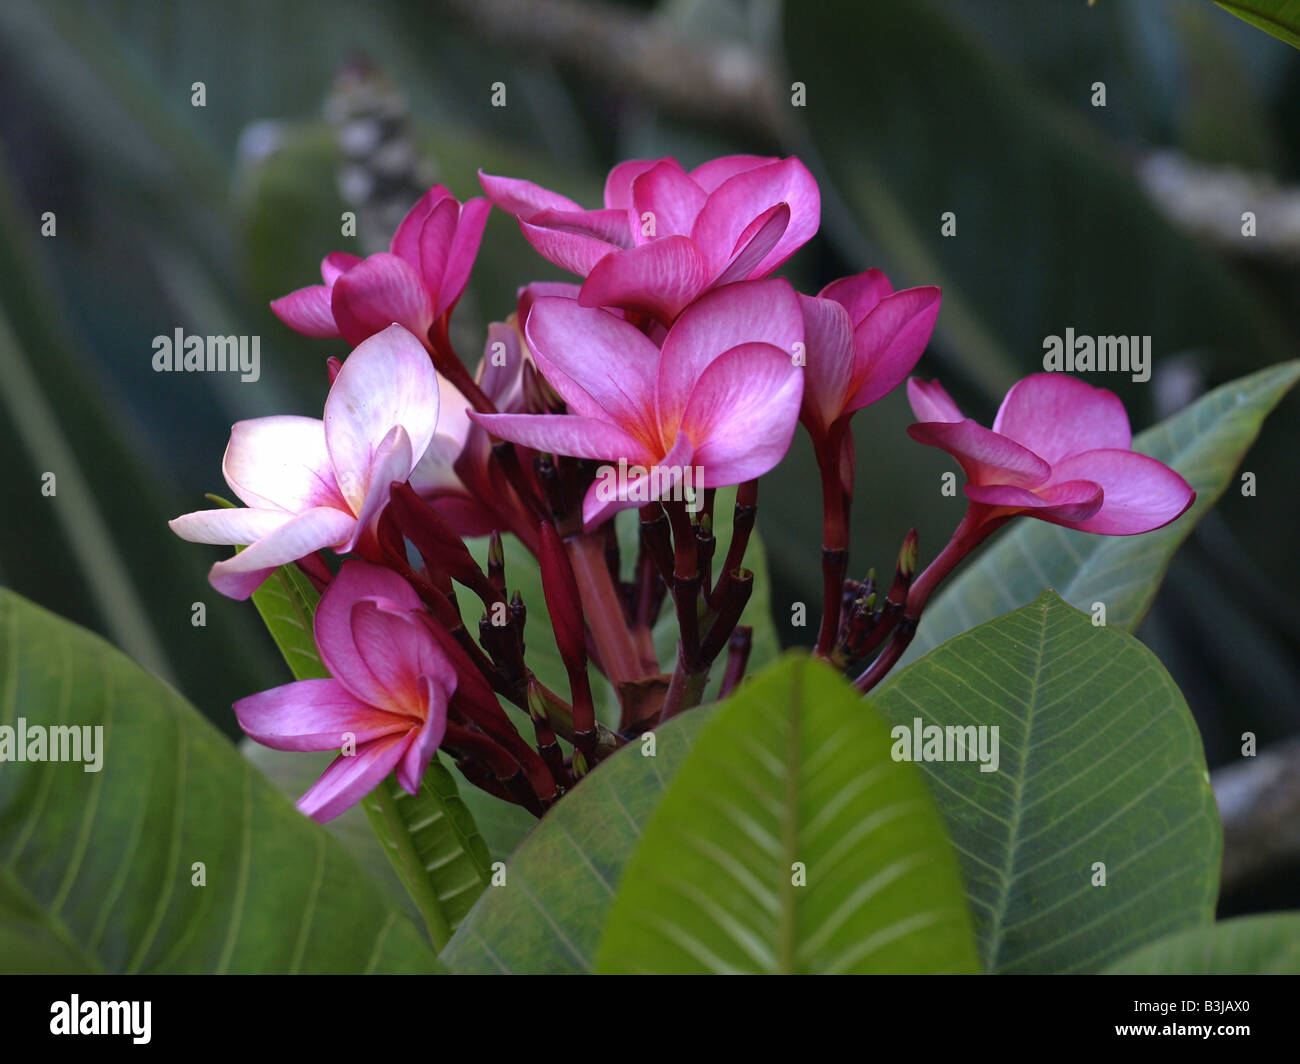 Pink and light pink plumeria flowers on tree stock photo royalty stock photo pink and light pink plumeria flowers on tree dhlflorist Gallery